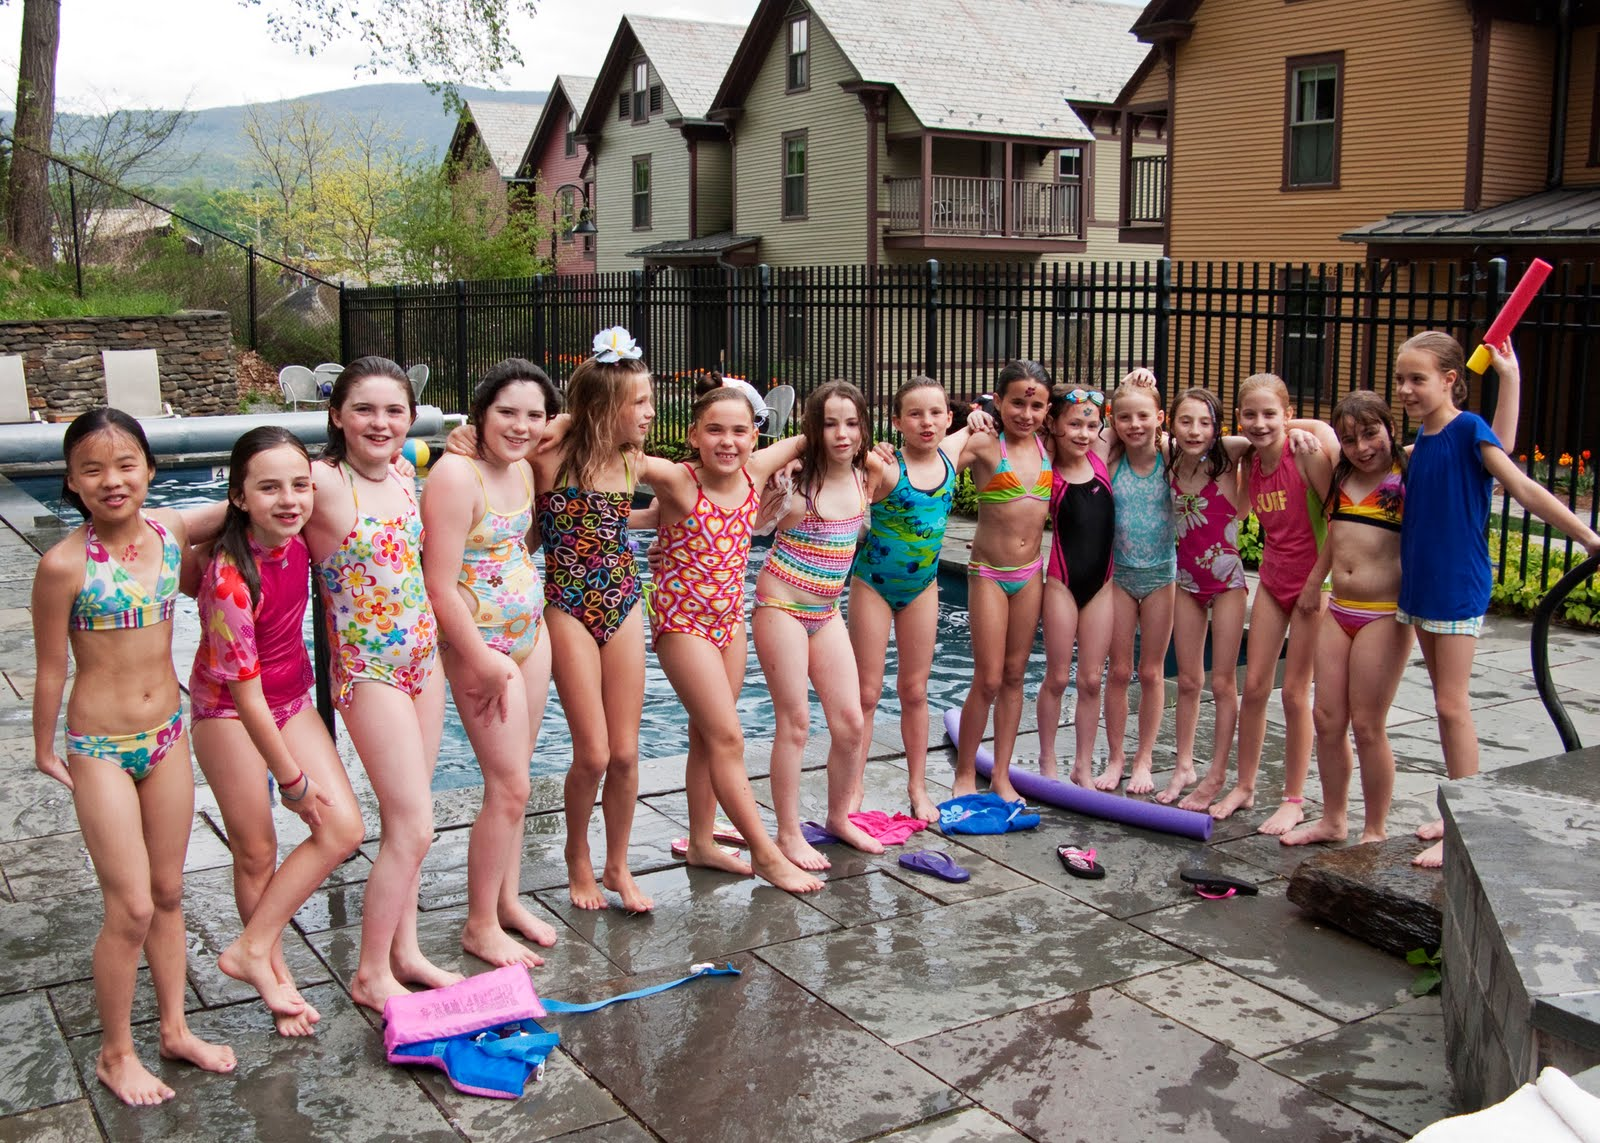 Naked 6th grade girls naked image